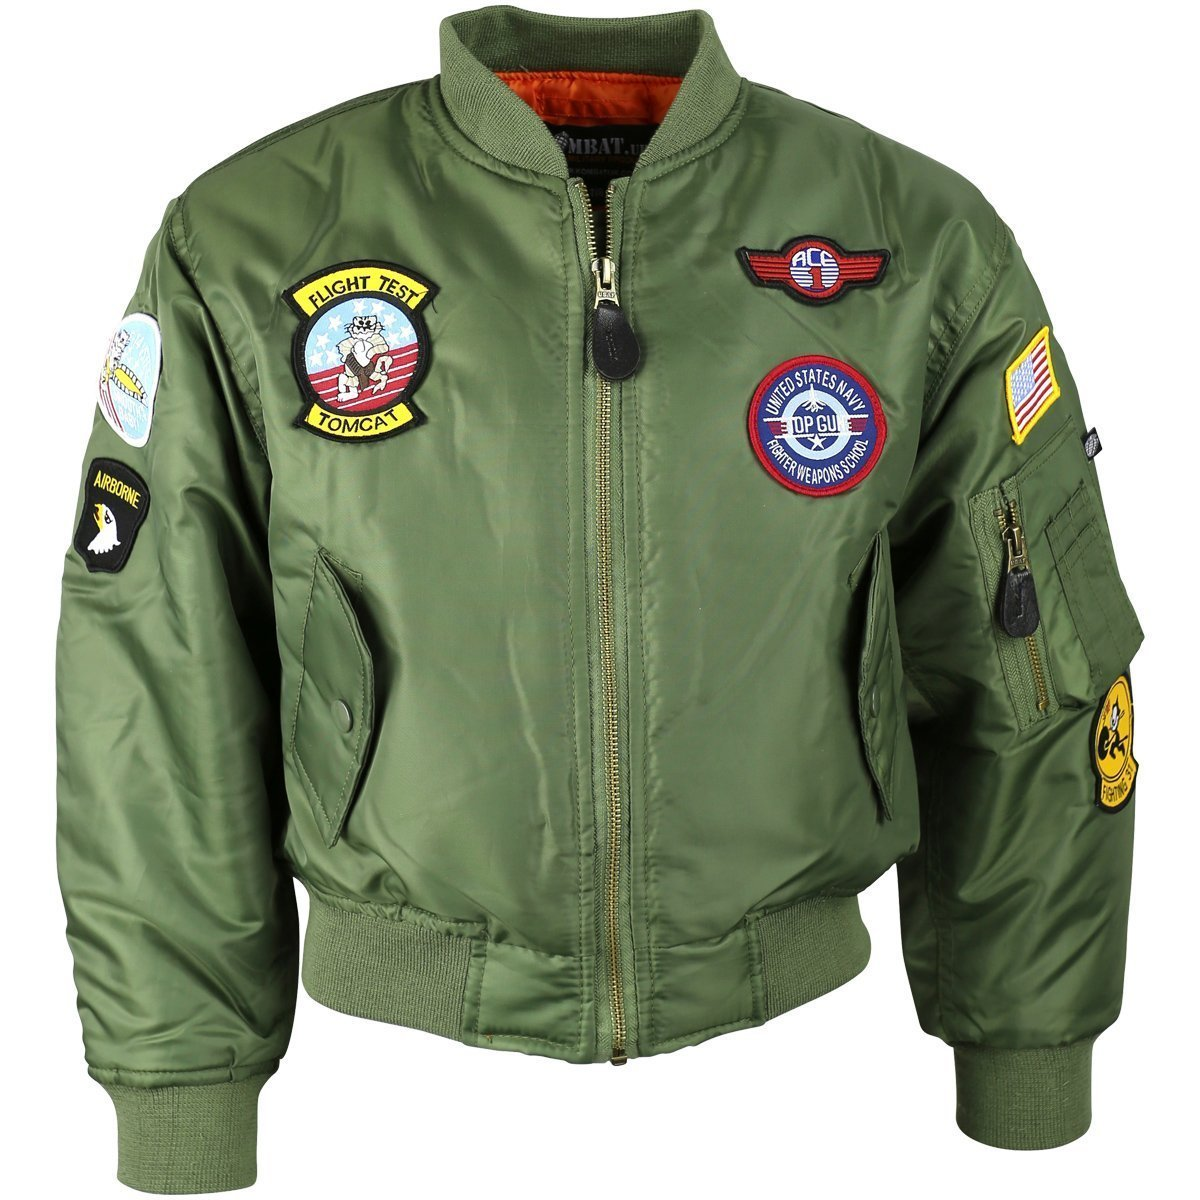 Kombat UK Children's Ma1 Flight Jacket - Bear Essentials Clothing Company